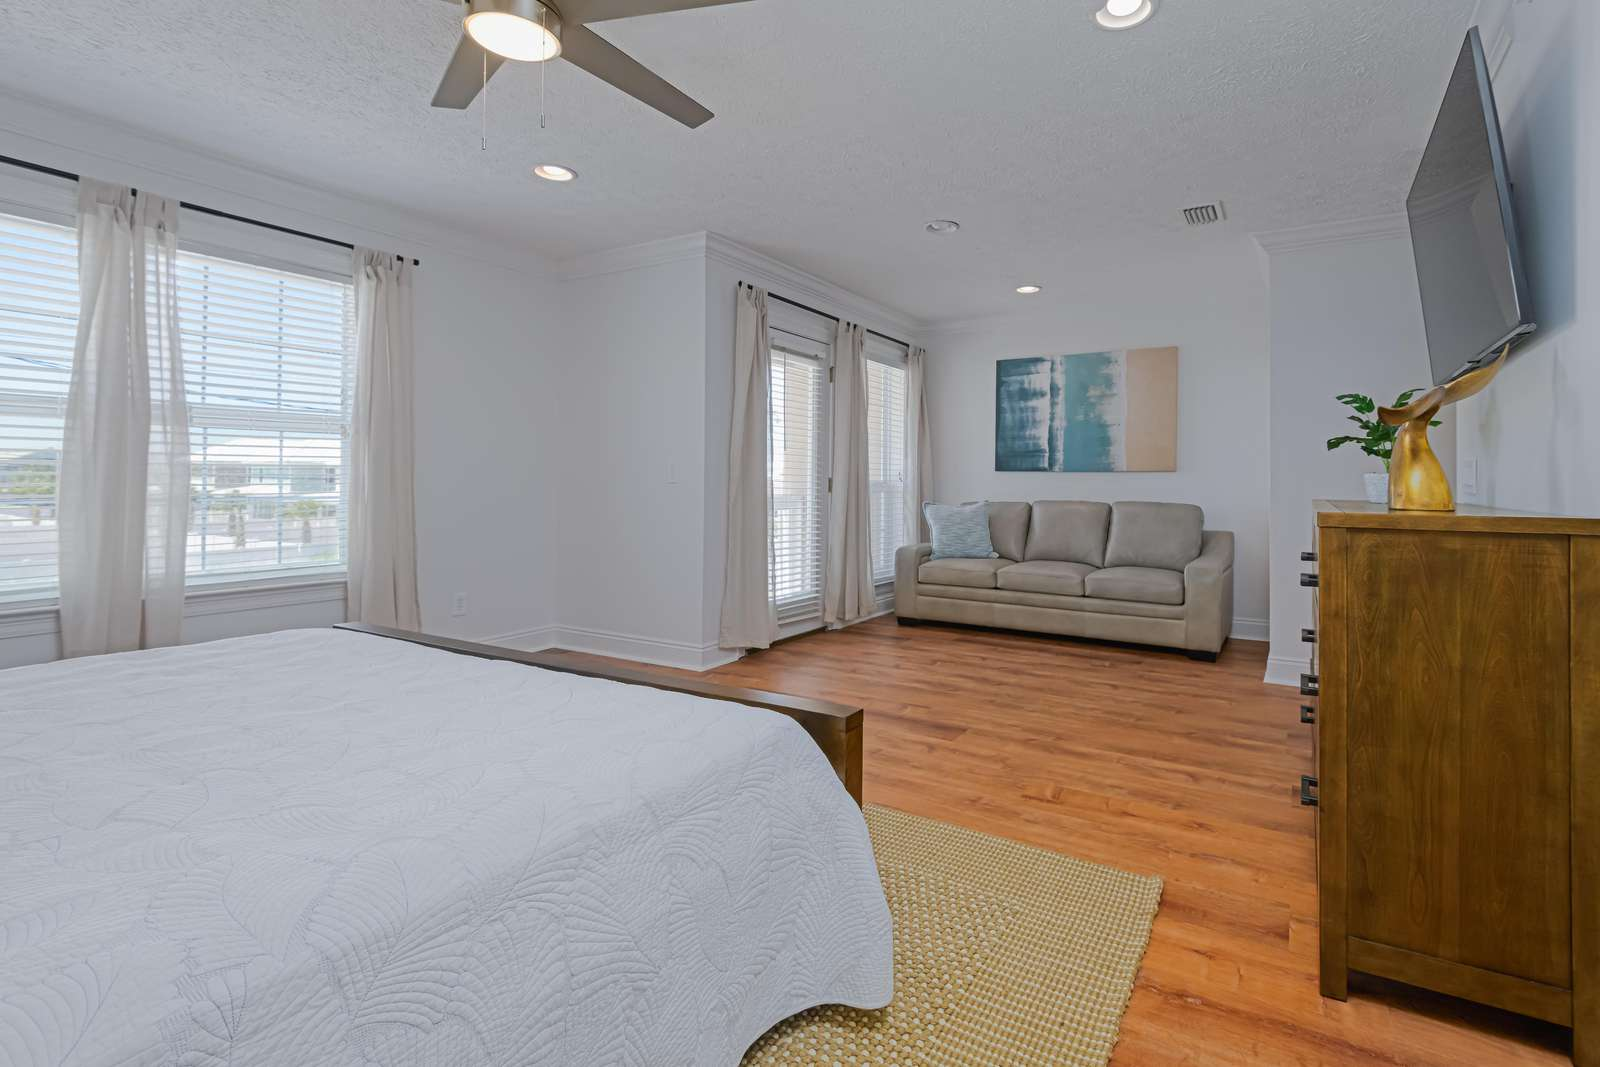 The master bedroom is a great size!